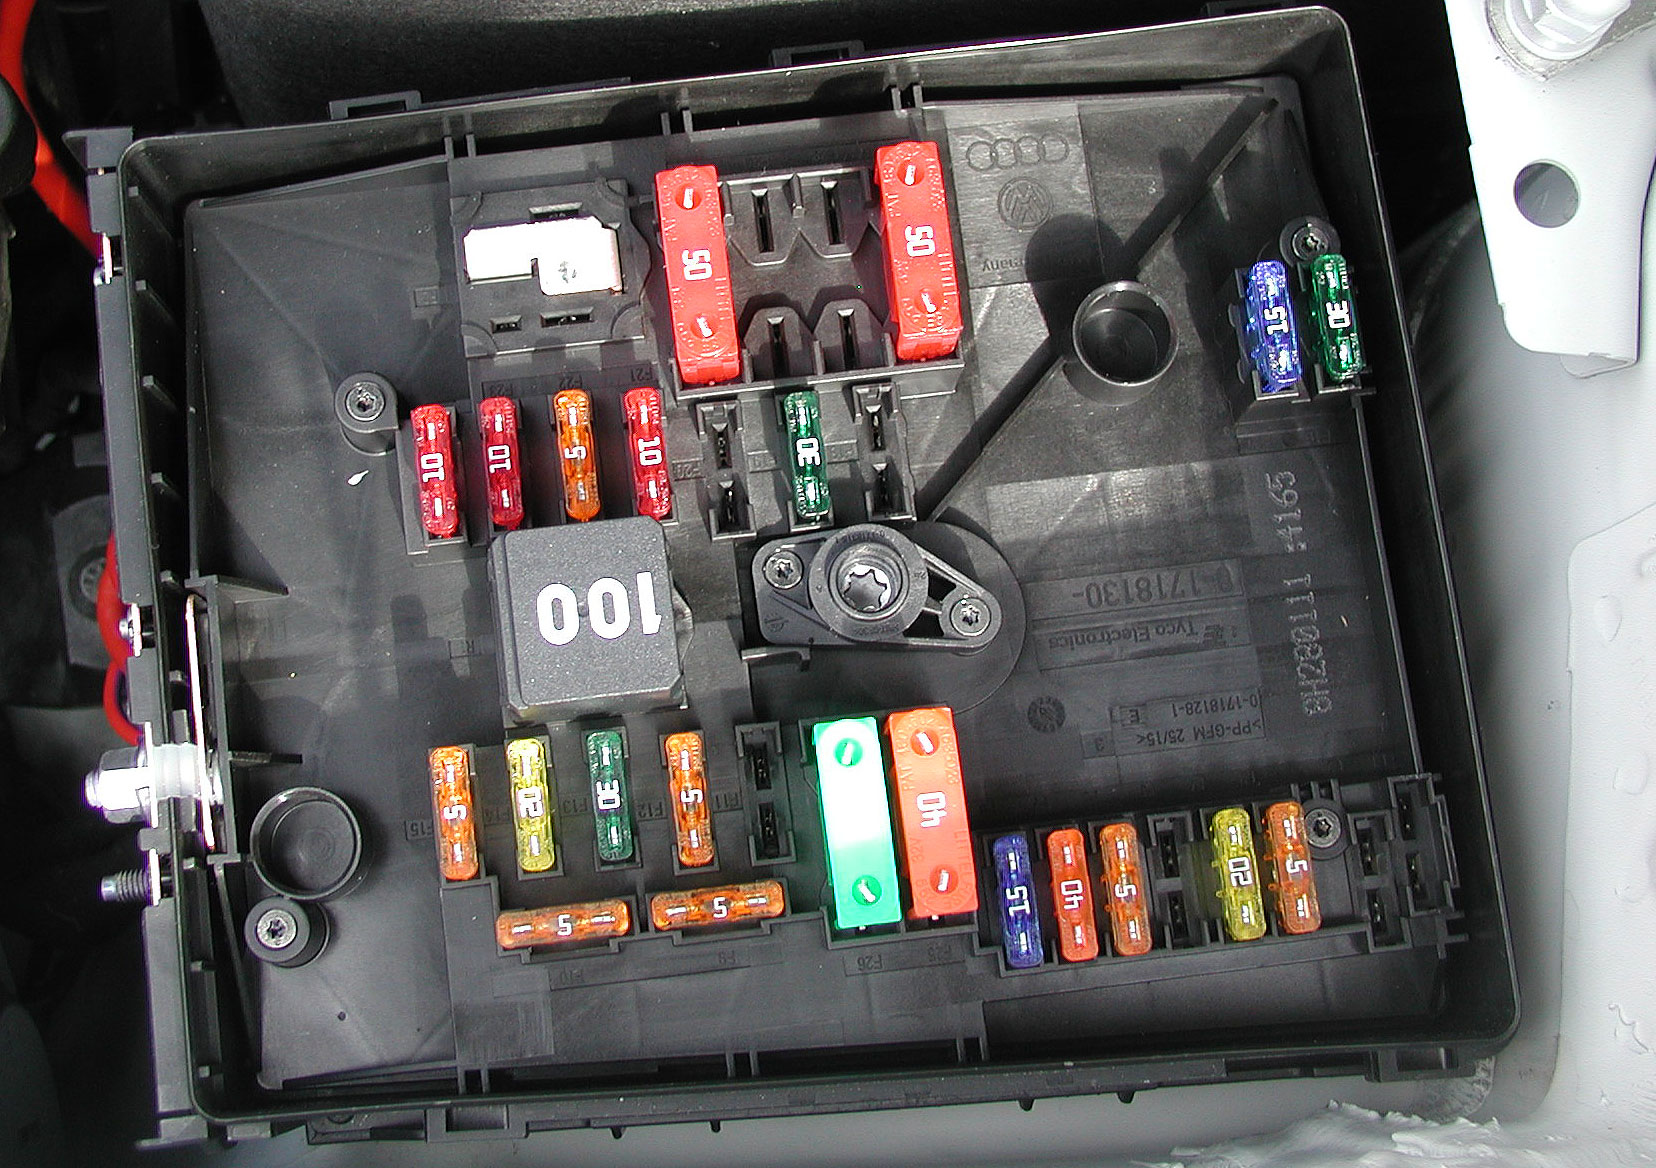 engineFuses2 golf mkv 1 9 tdi rcd 310 battery drain the volkswagen club of 2010 vw gti fuse box diagram at soozxer.org